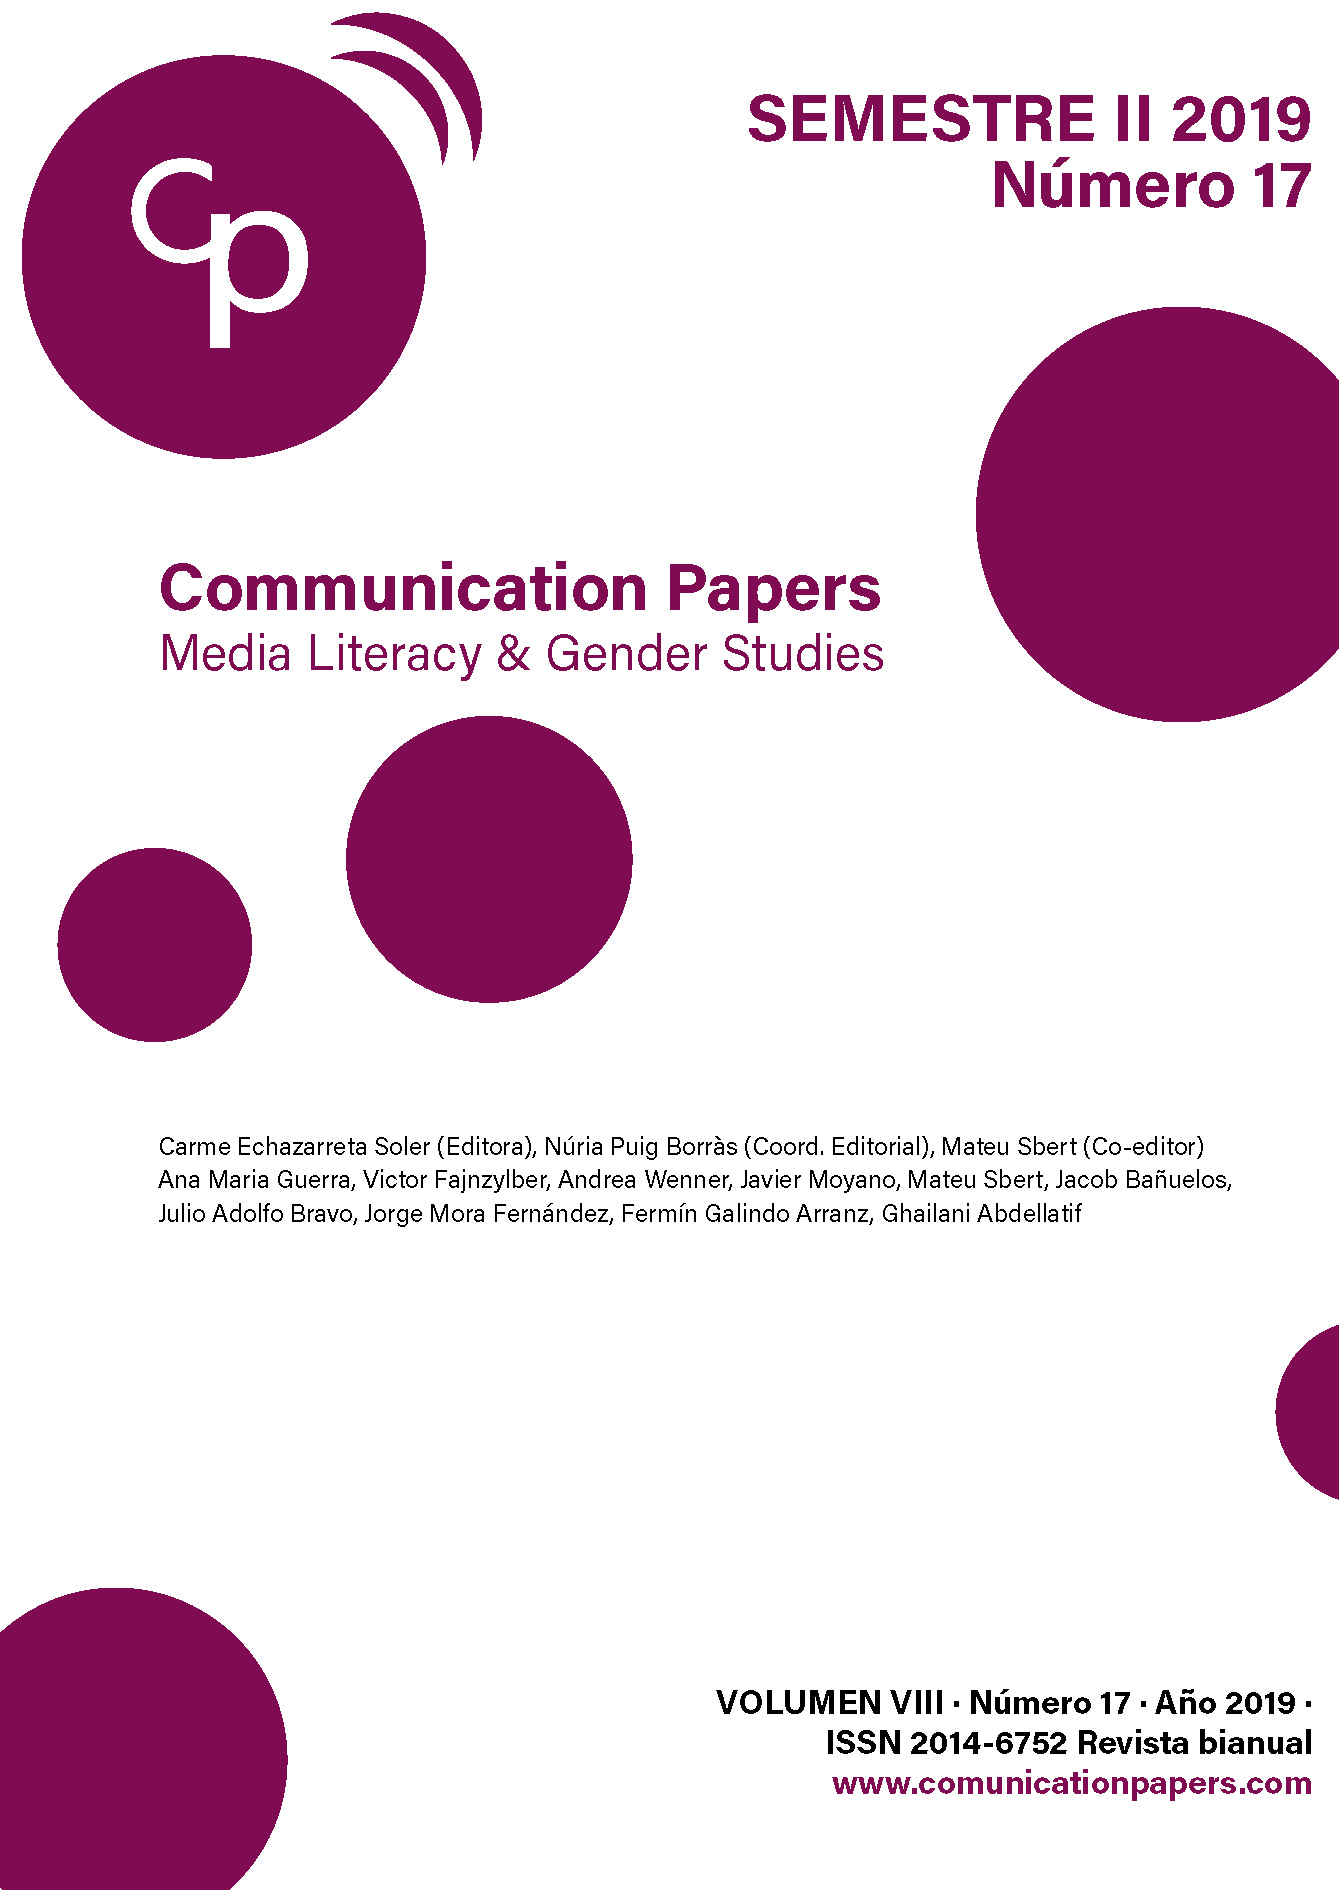 Communication Papers. N.17